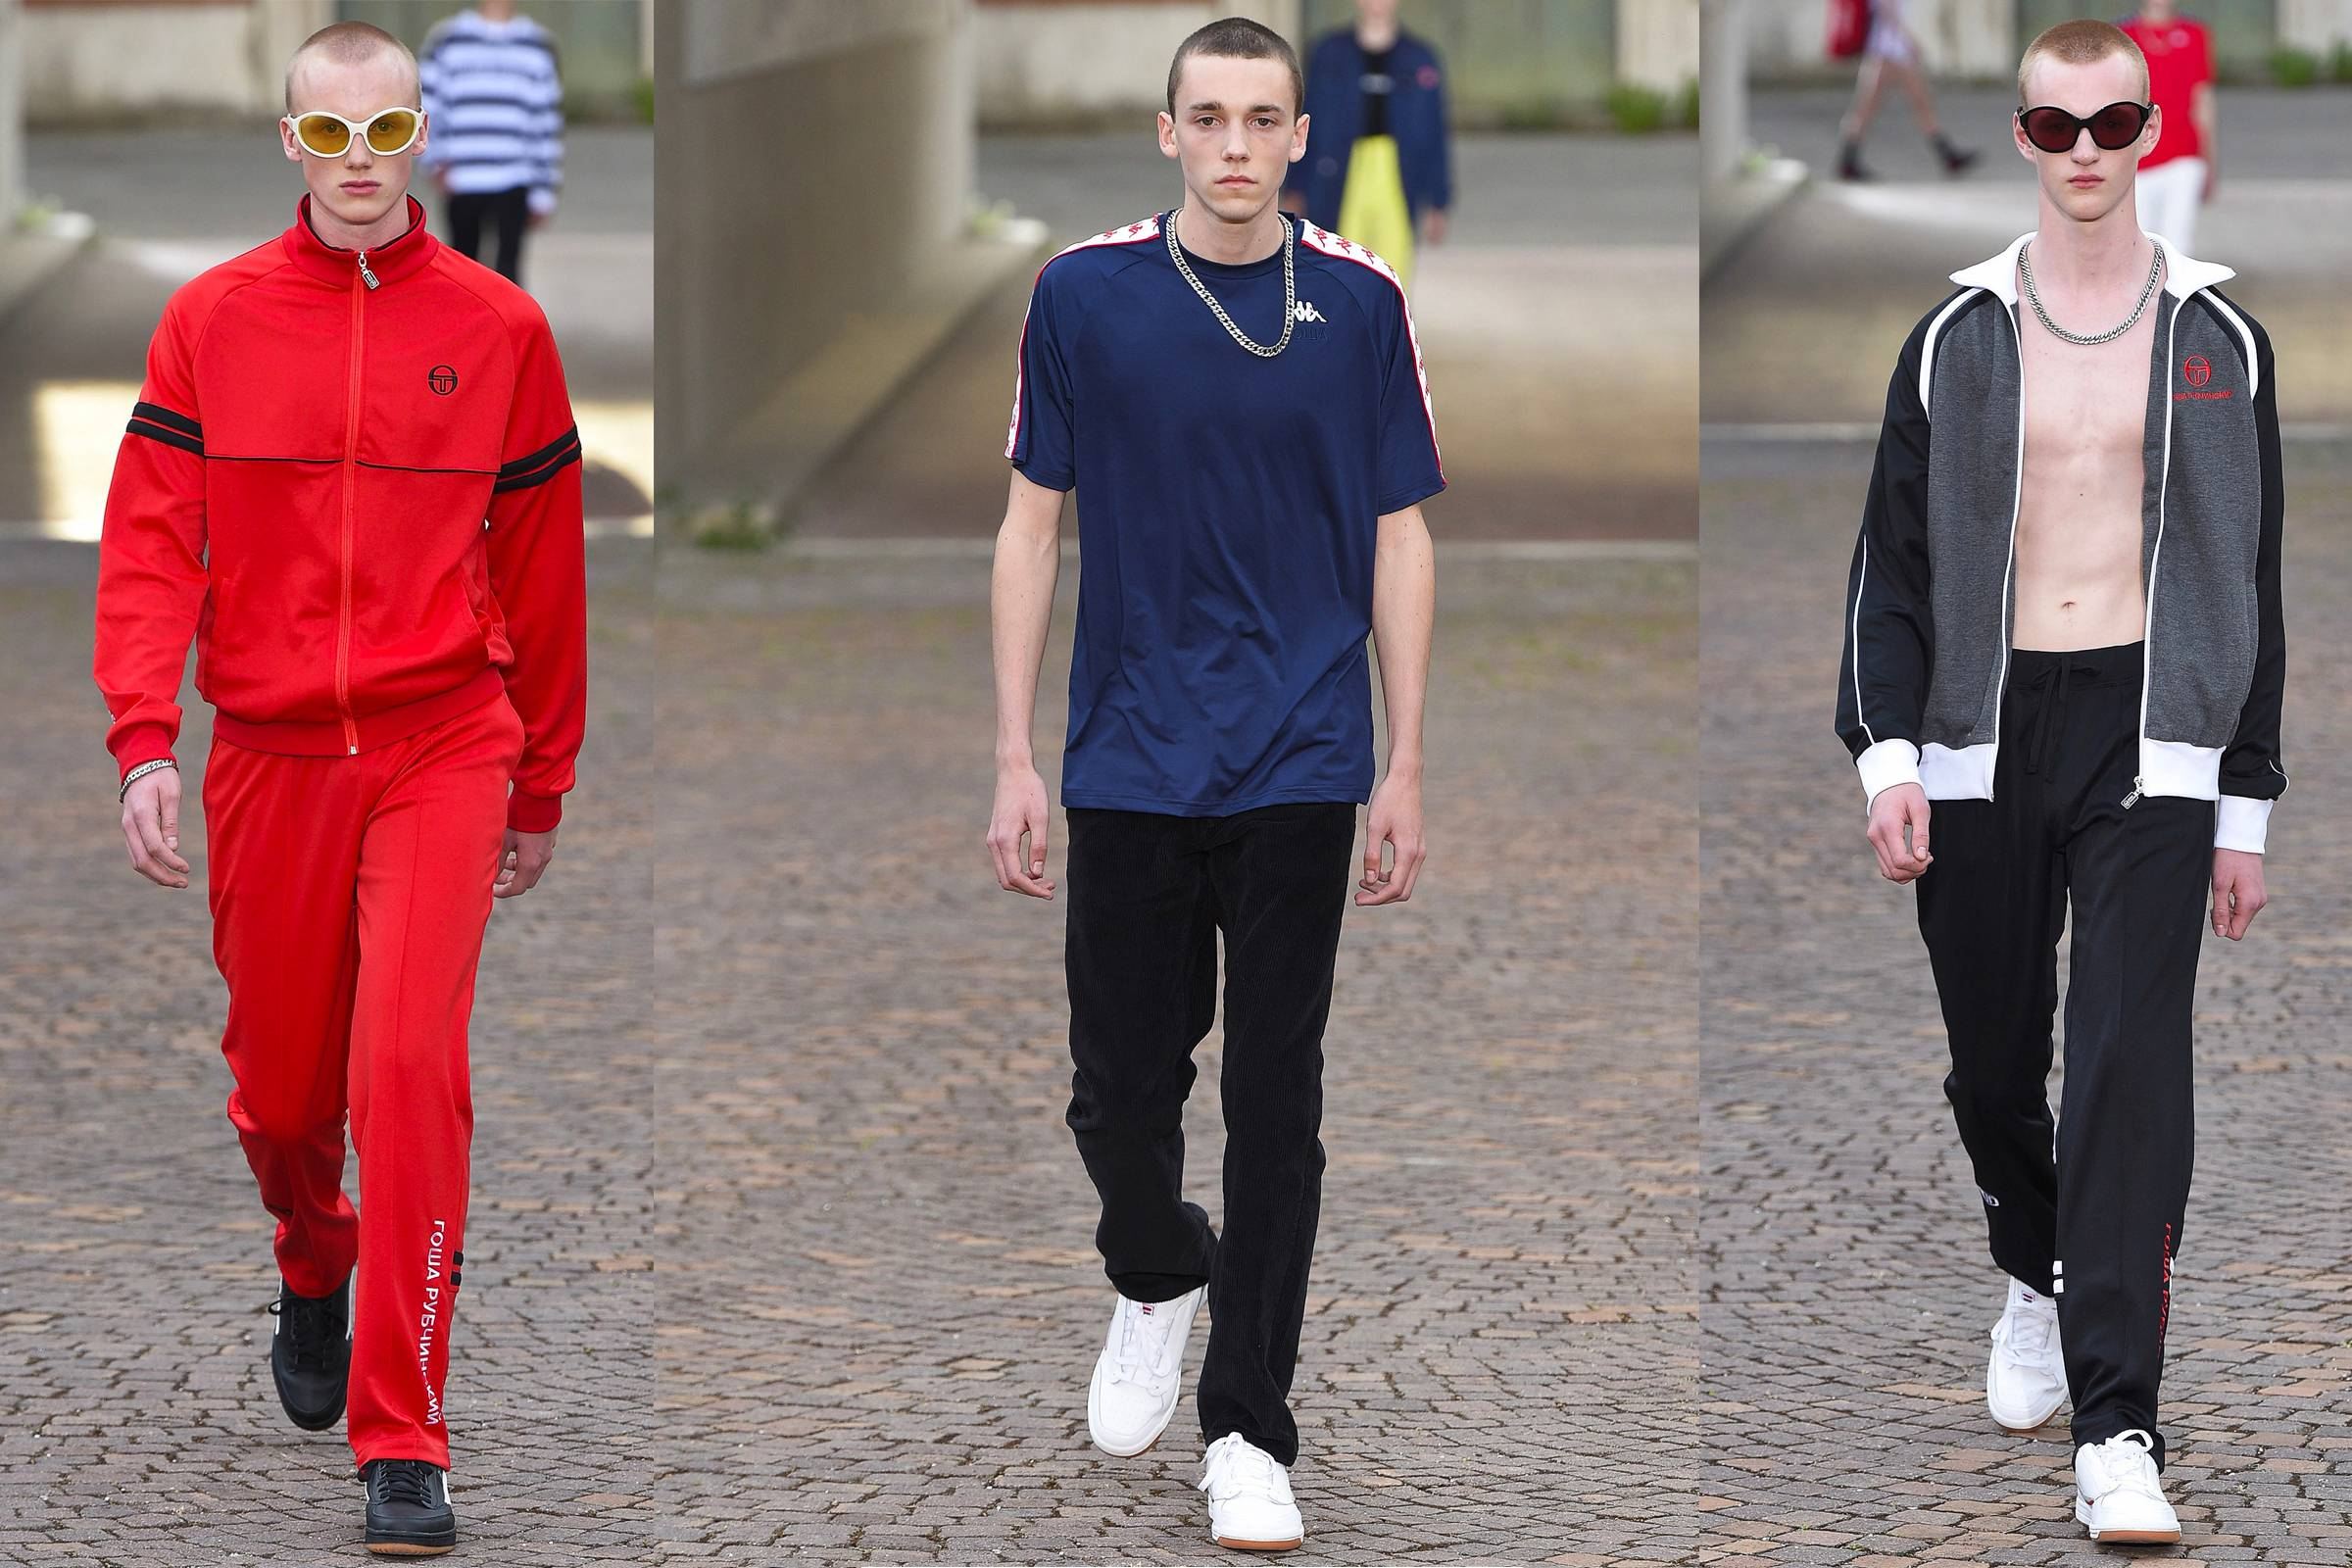 bb974acba03 Looks from Gosha Rubchinskiy's Spring/Summer 2017 collection at Pitti Uomo